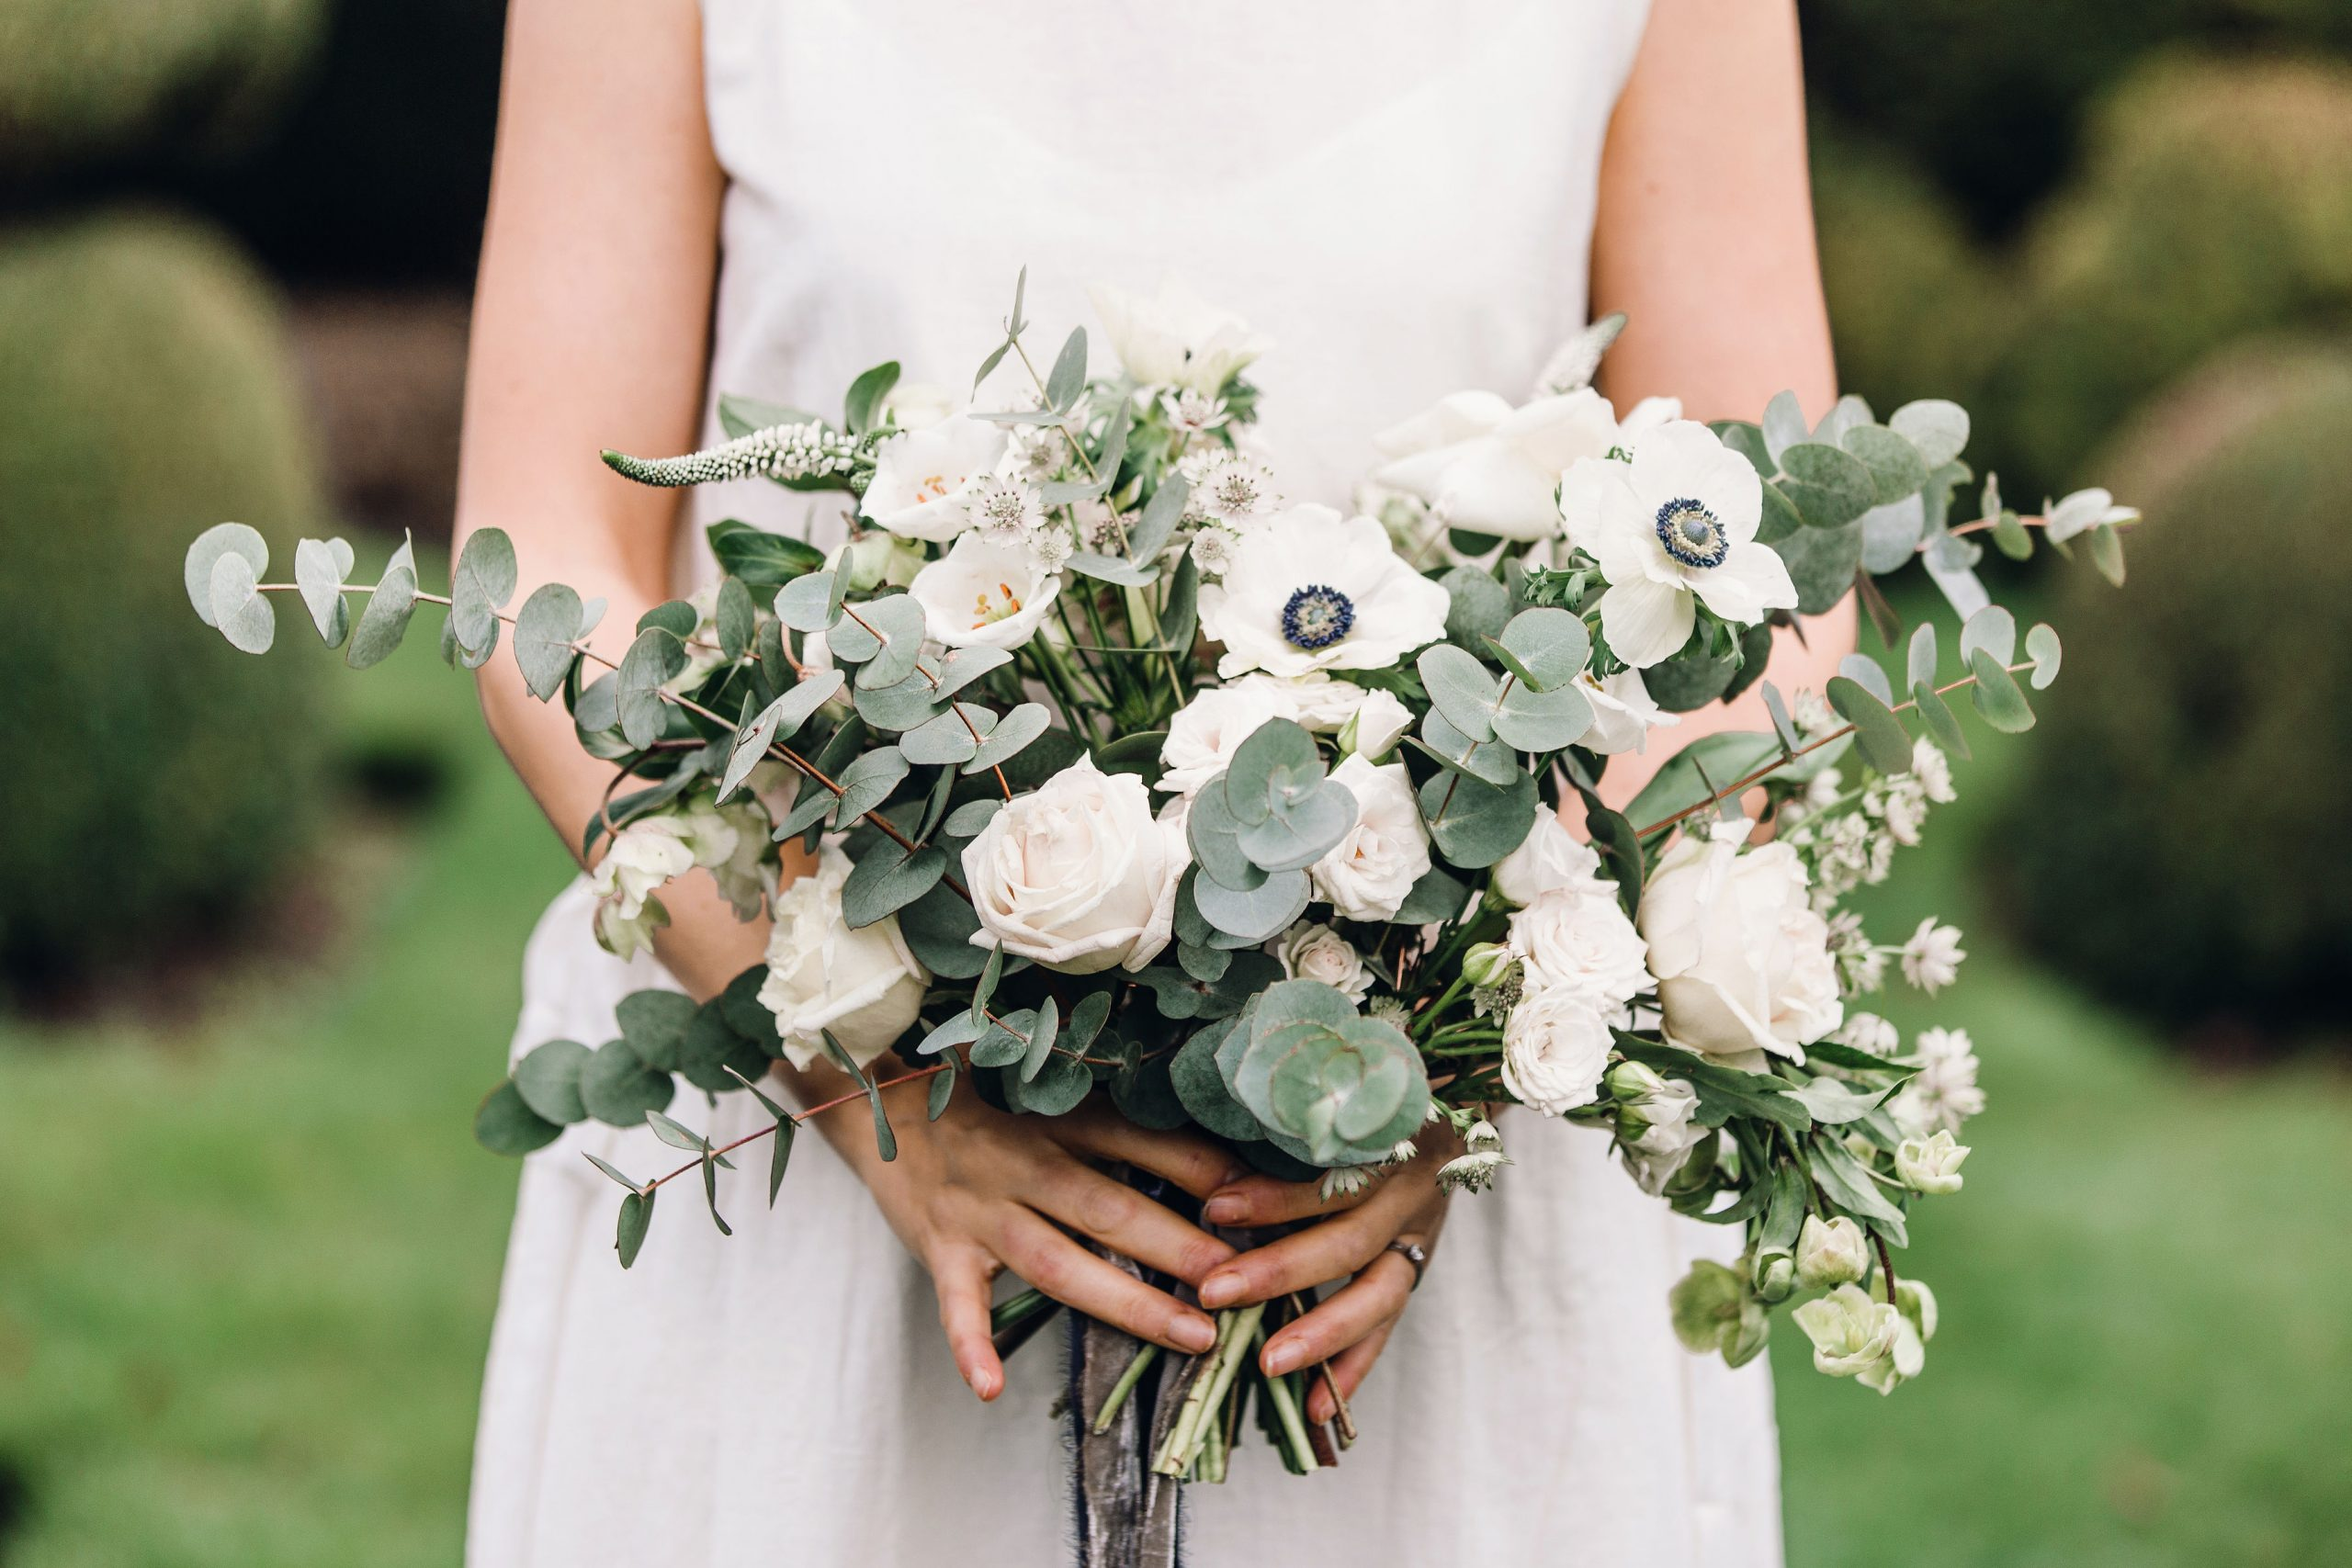 Bride holding bridal bouquet, natural and relaxed.